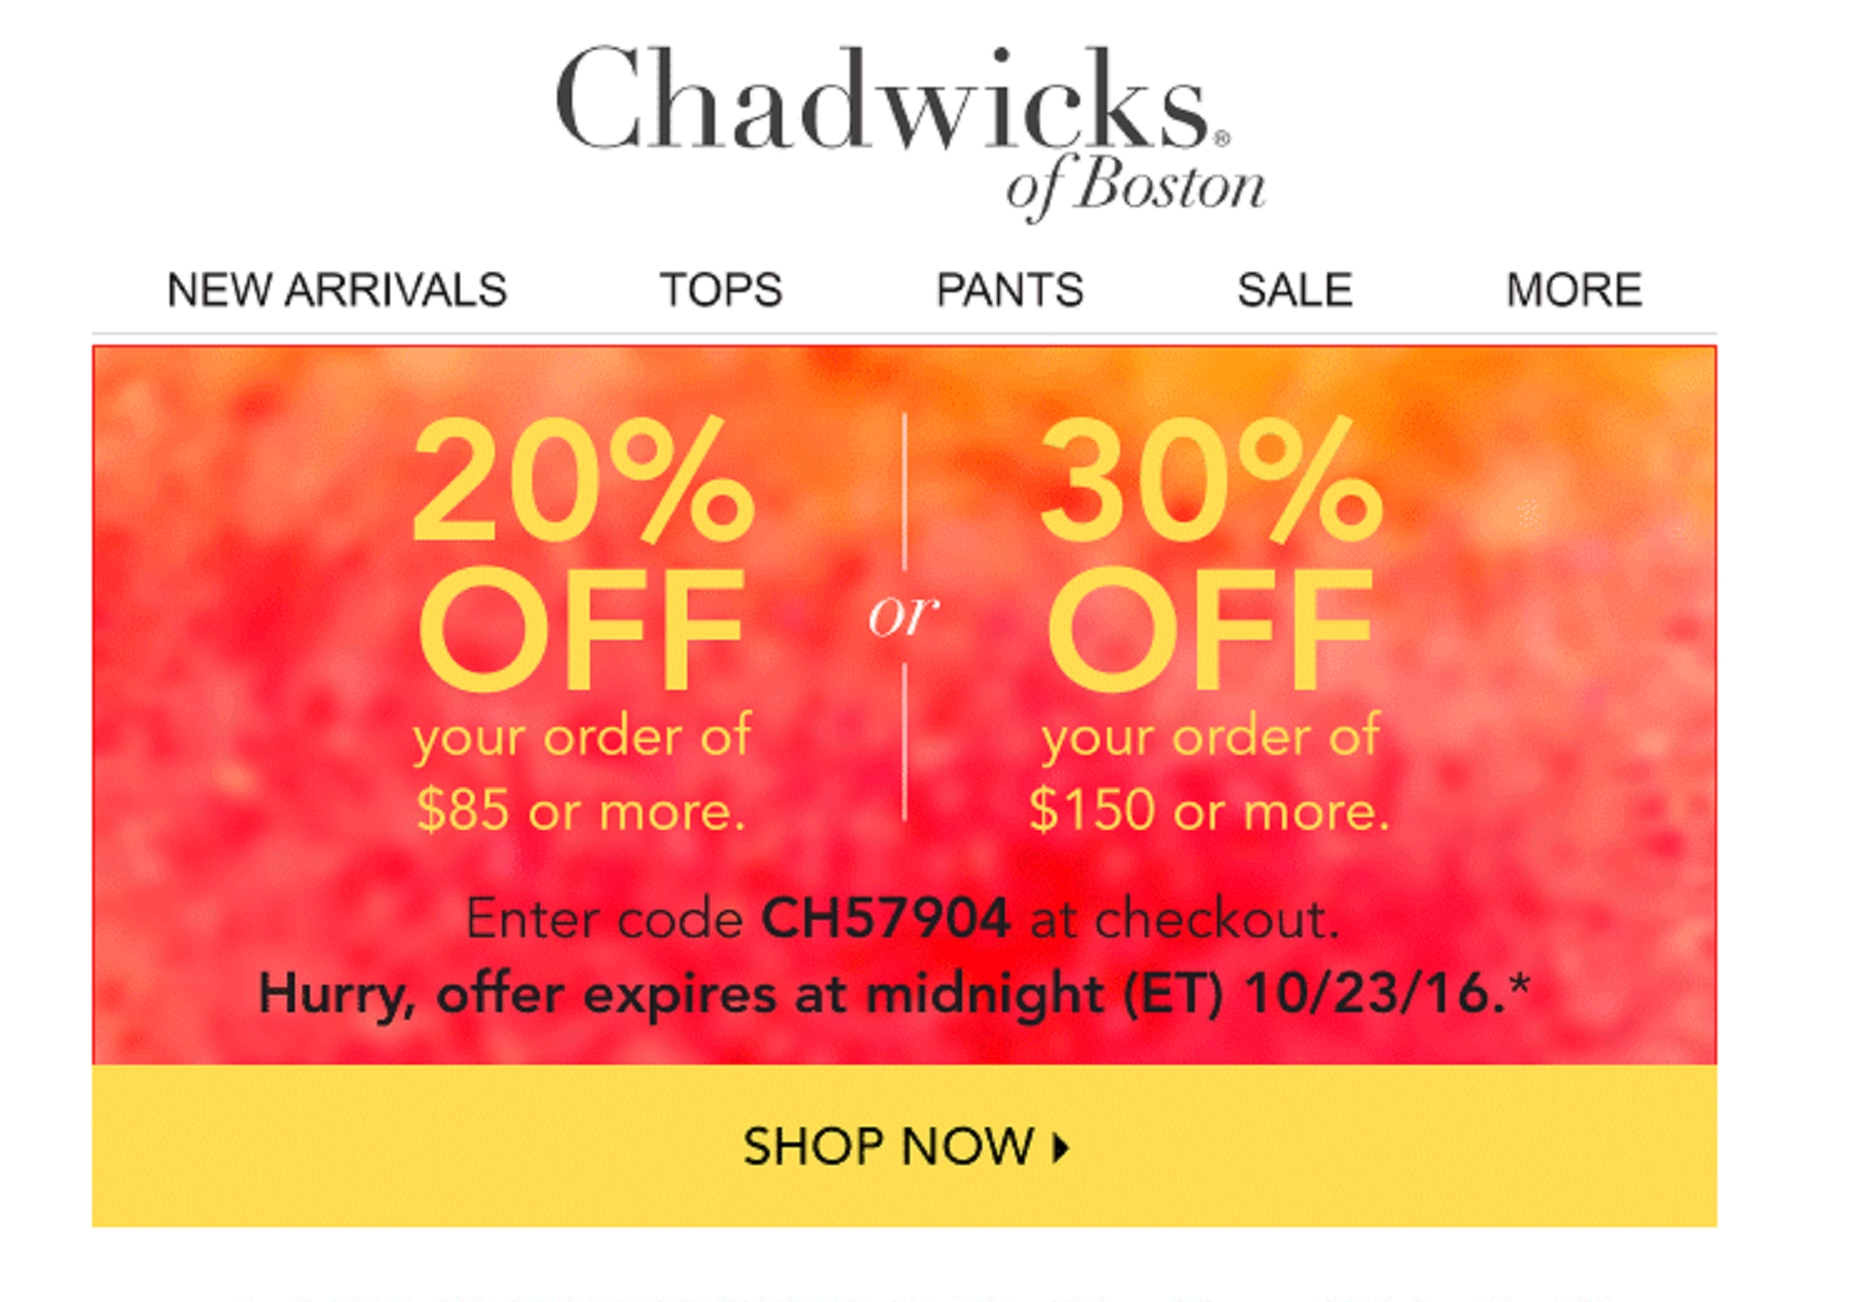 Chadwicks coupon code